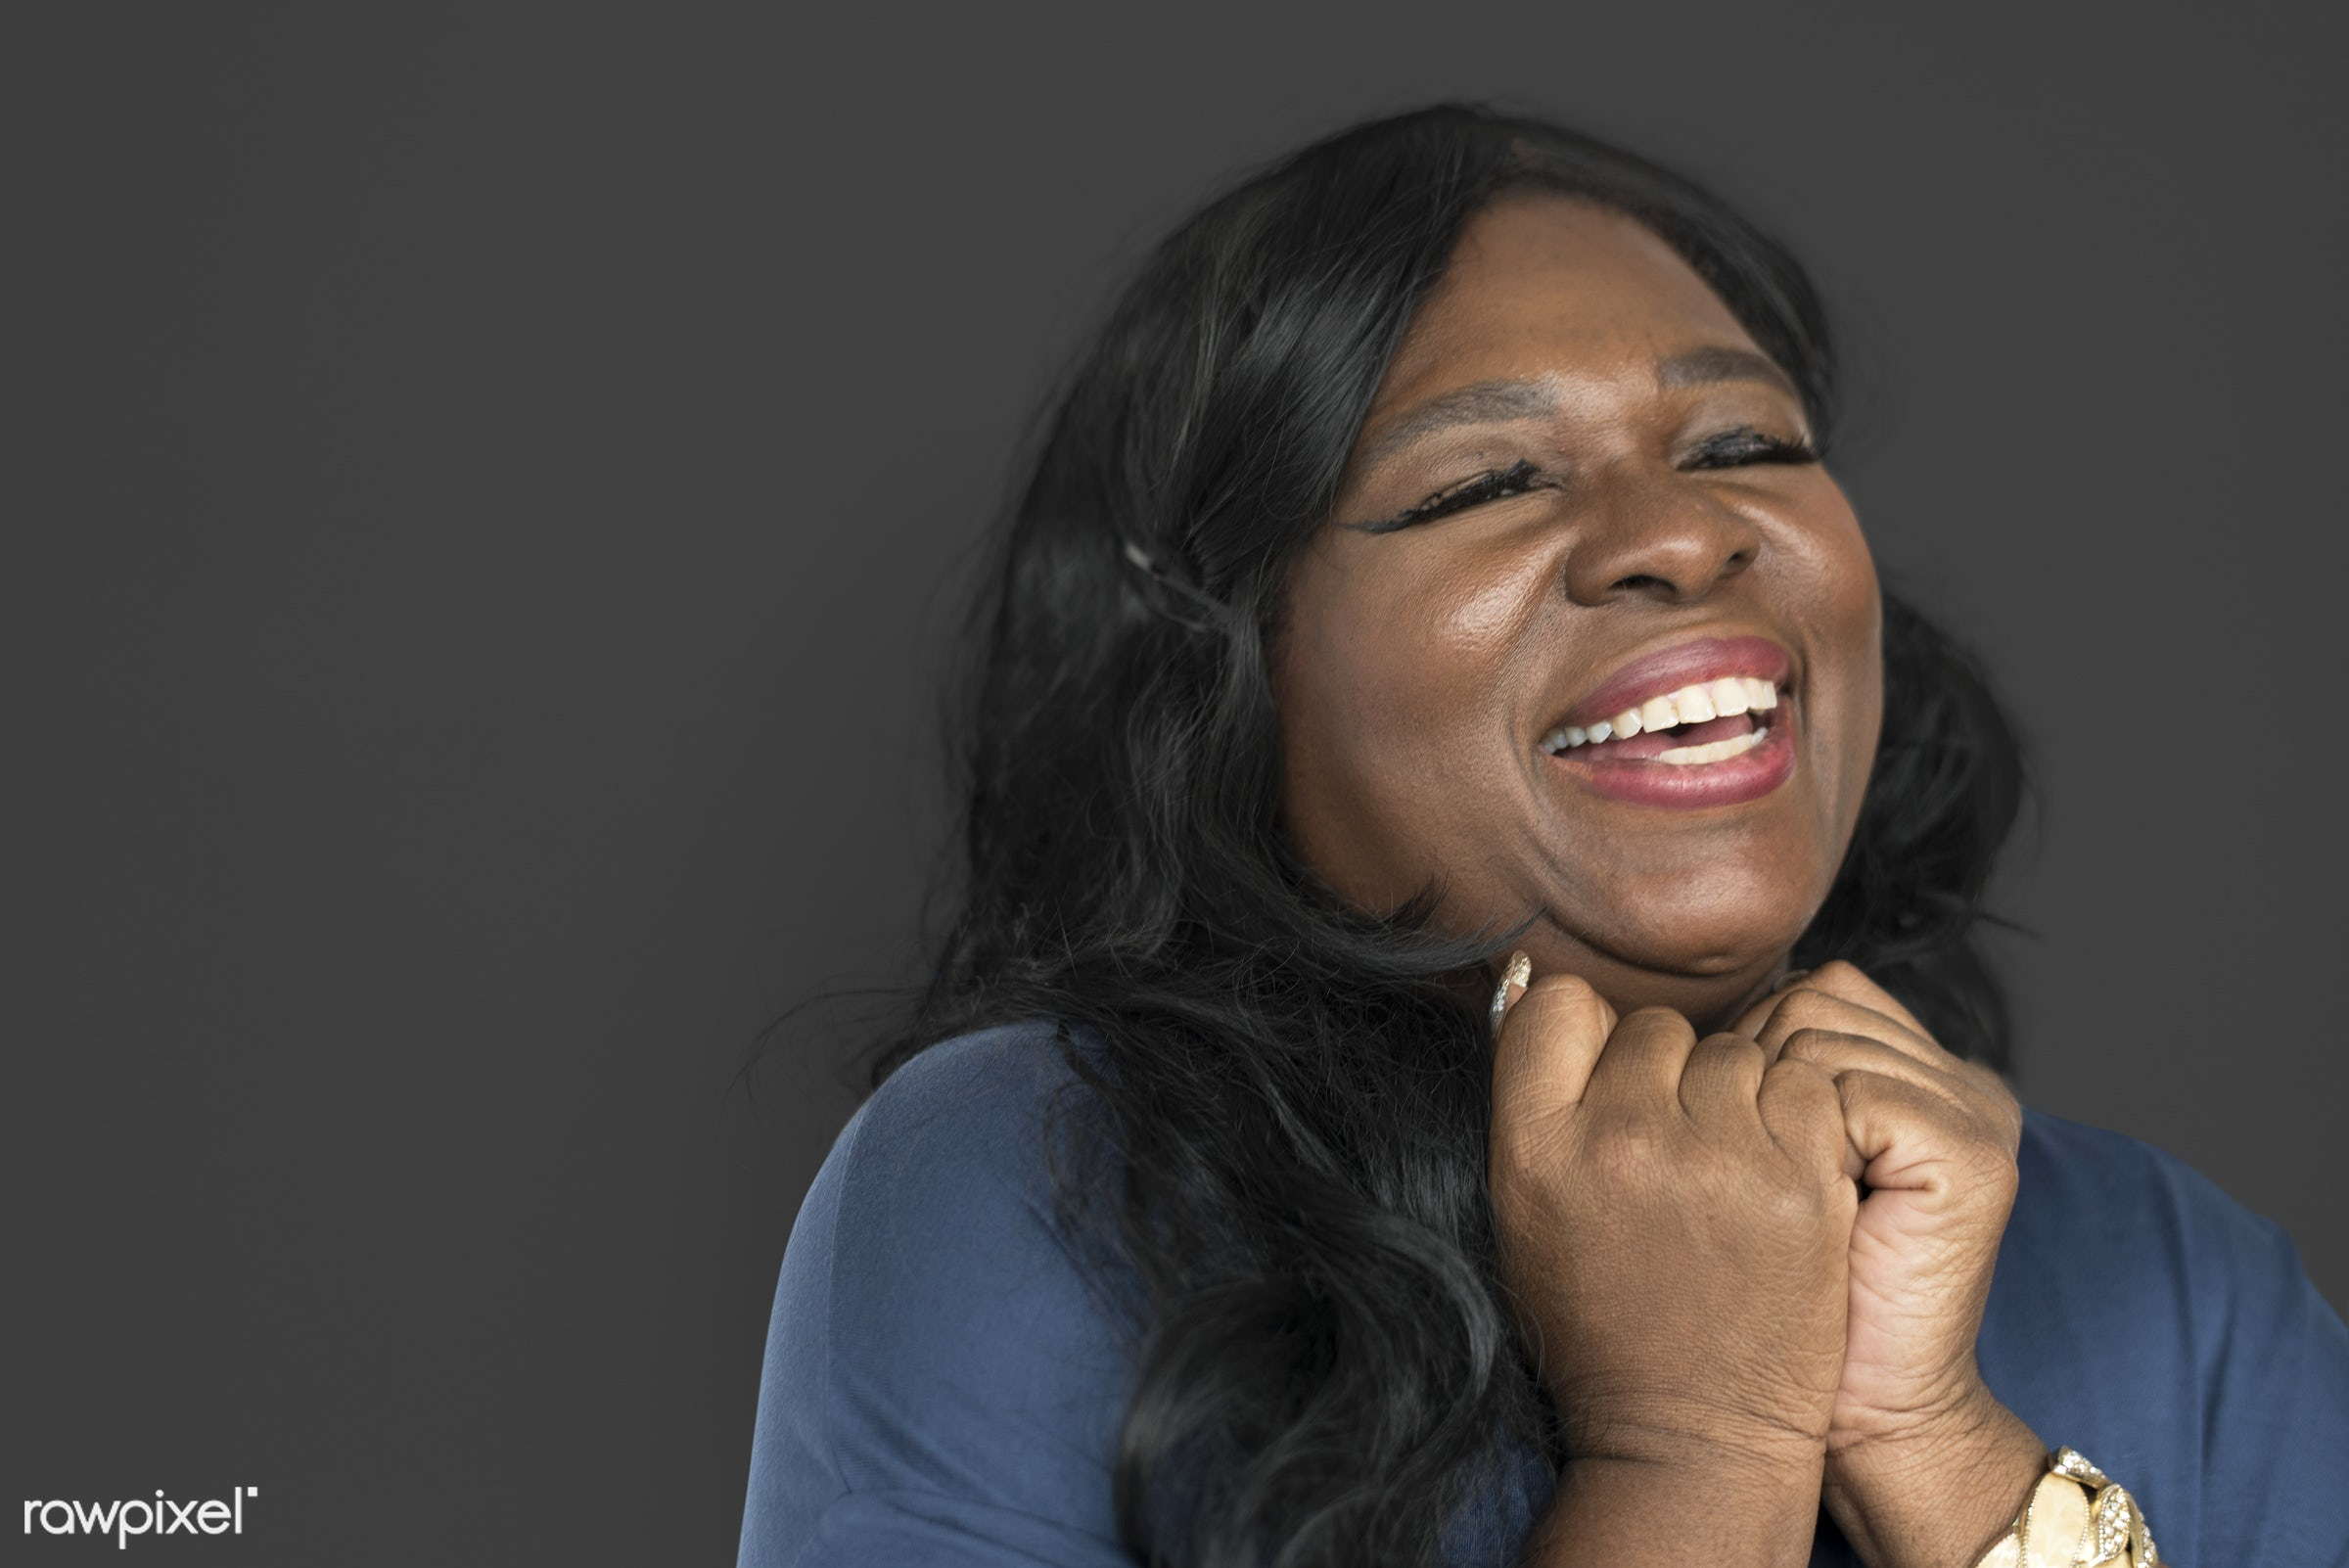 studio, expression, person, model, chubby, race, people, style, woman, lifestyle, casual, cheerful, smiling, isolated,...